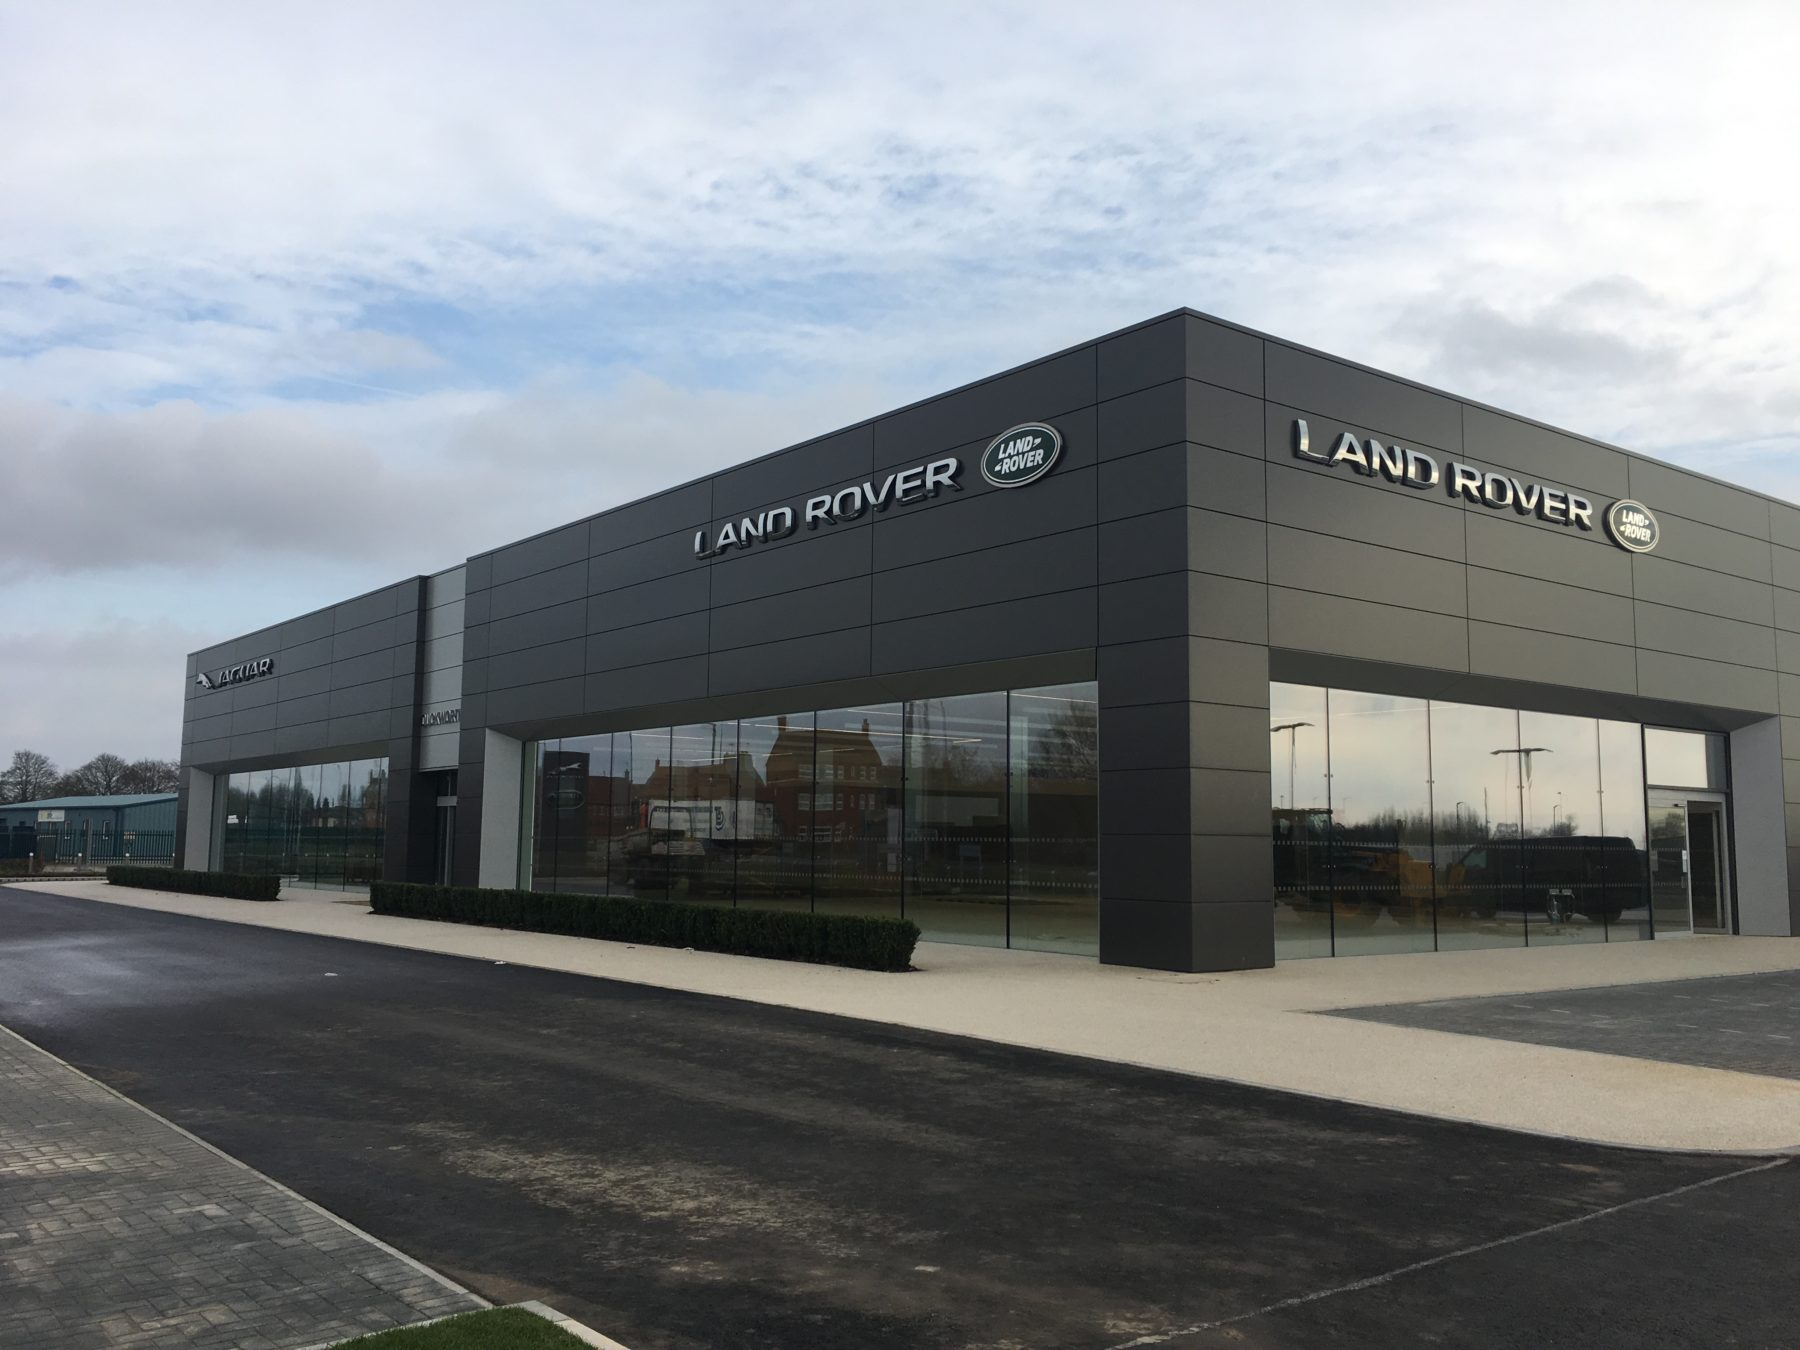 JLR Project almost complete